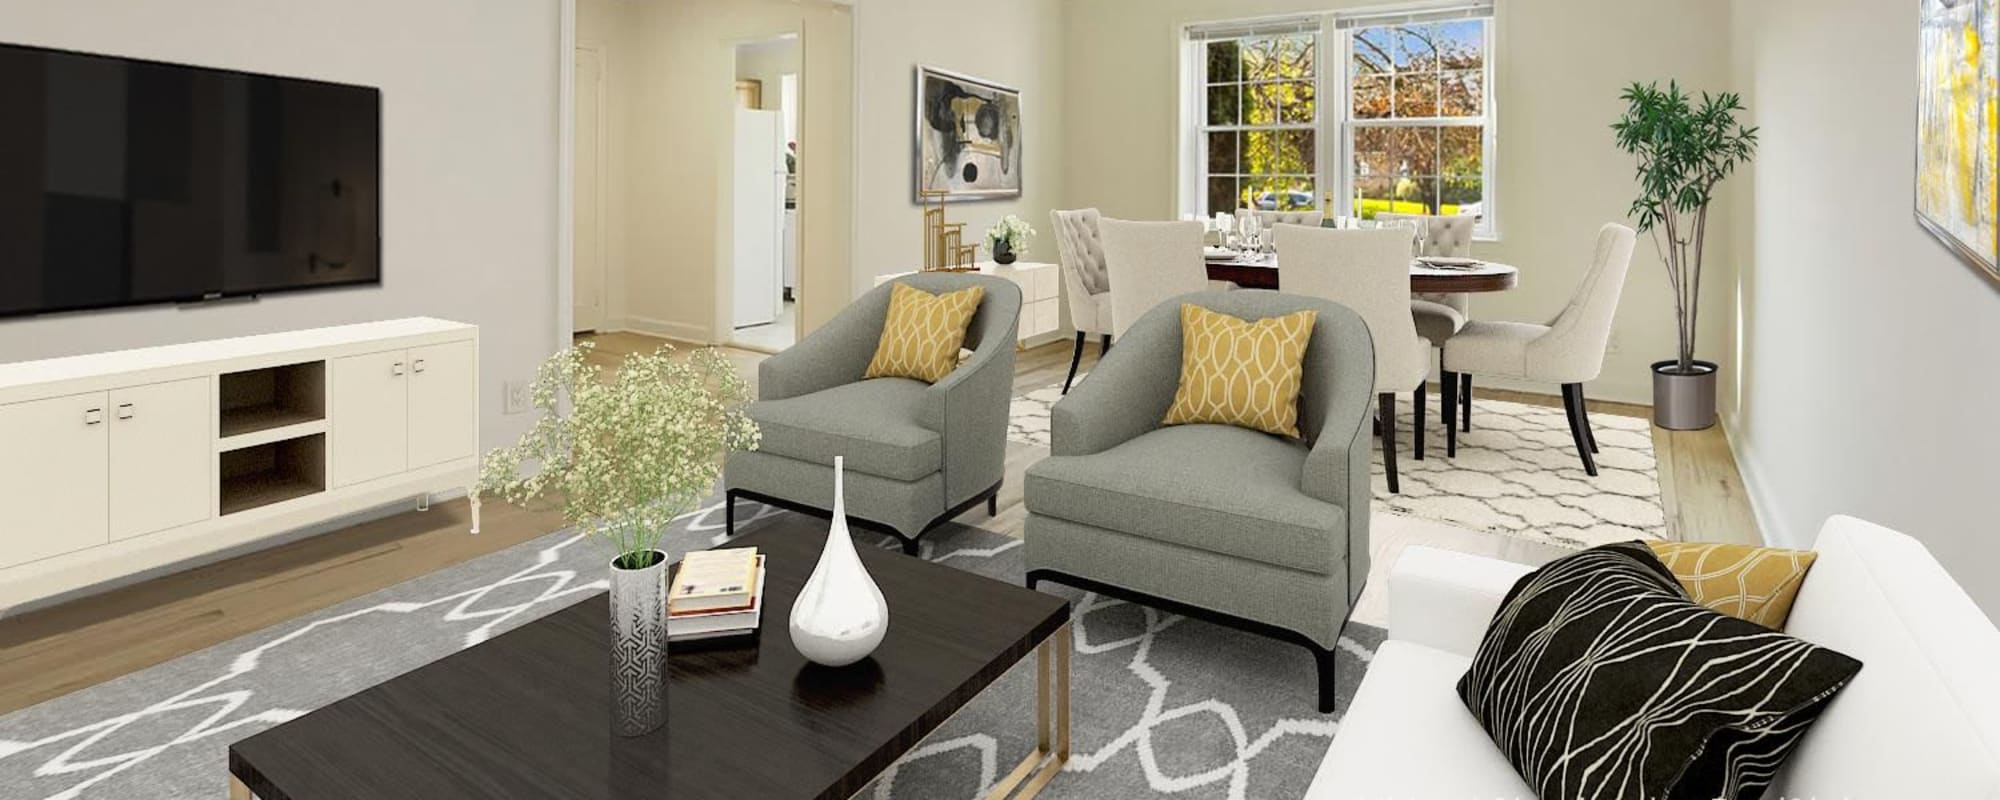 Floor plans at Mayflower Apartments in Ridgewood, New Jersey